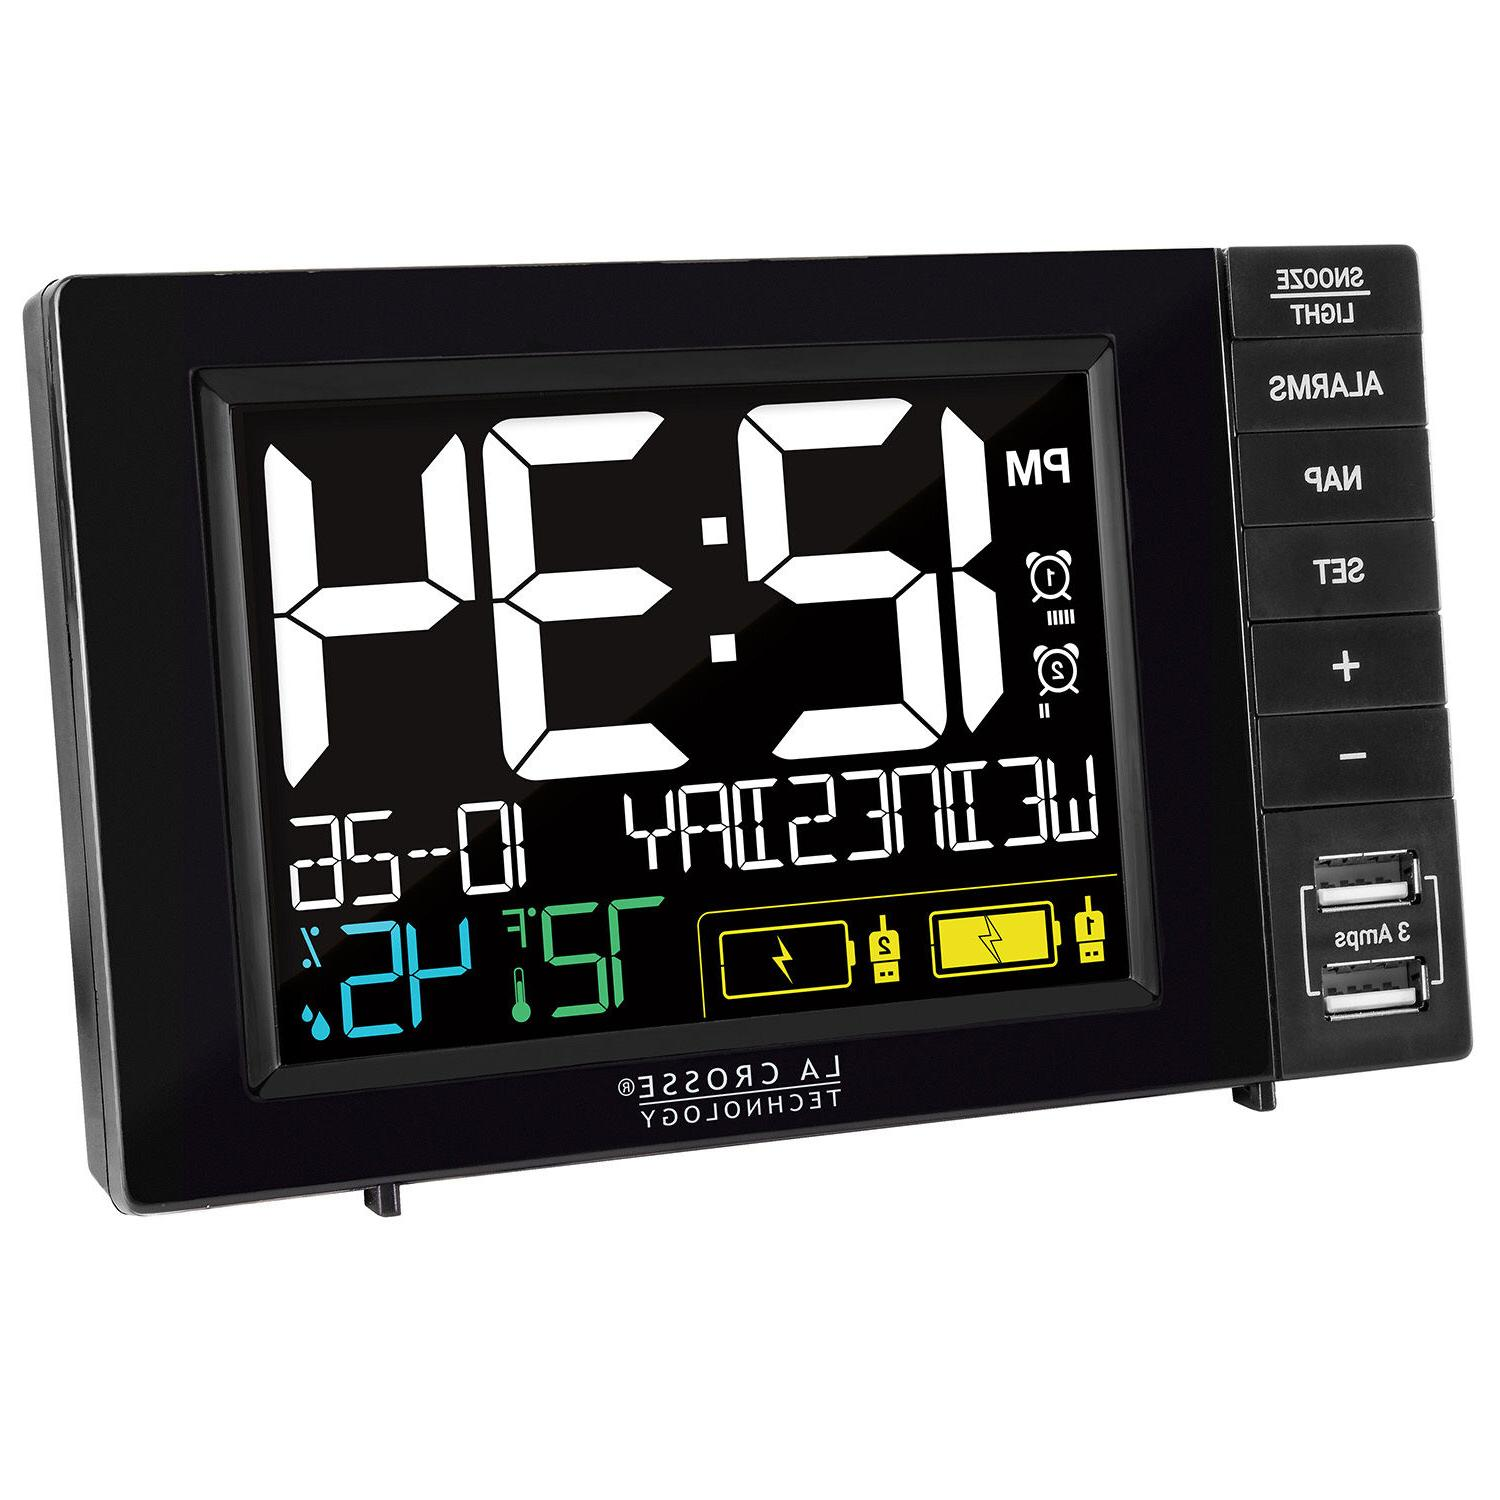 317-1909 La Crosse Technology Dual Alarm Clock with 2 -